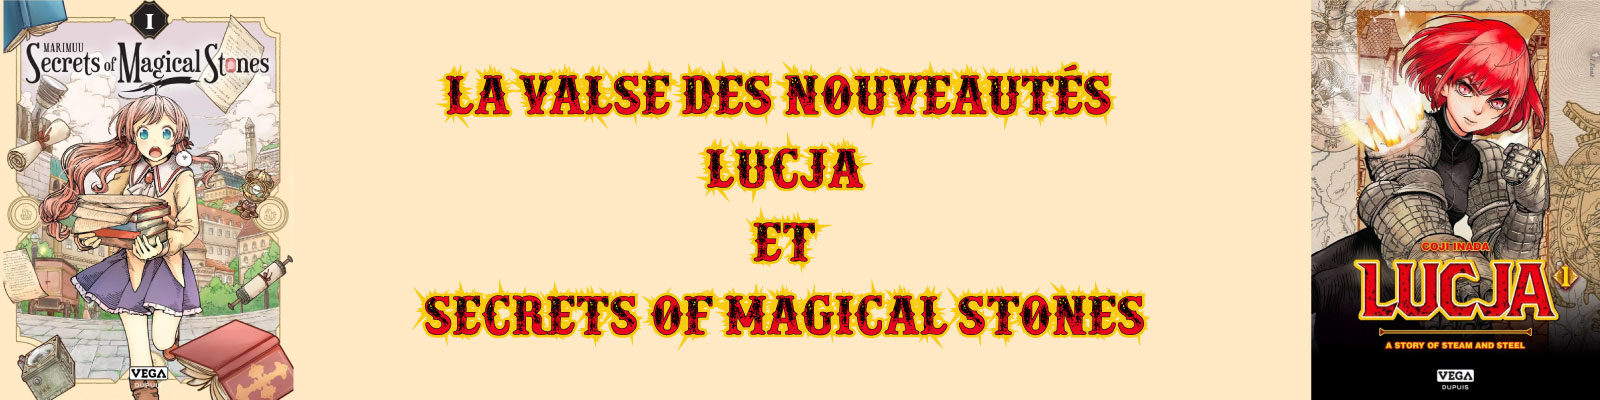 Lucja-a-story-of-steam-and-steel-Vol.-1-2